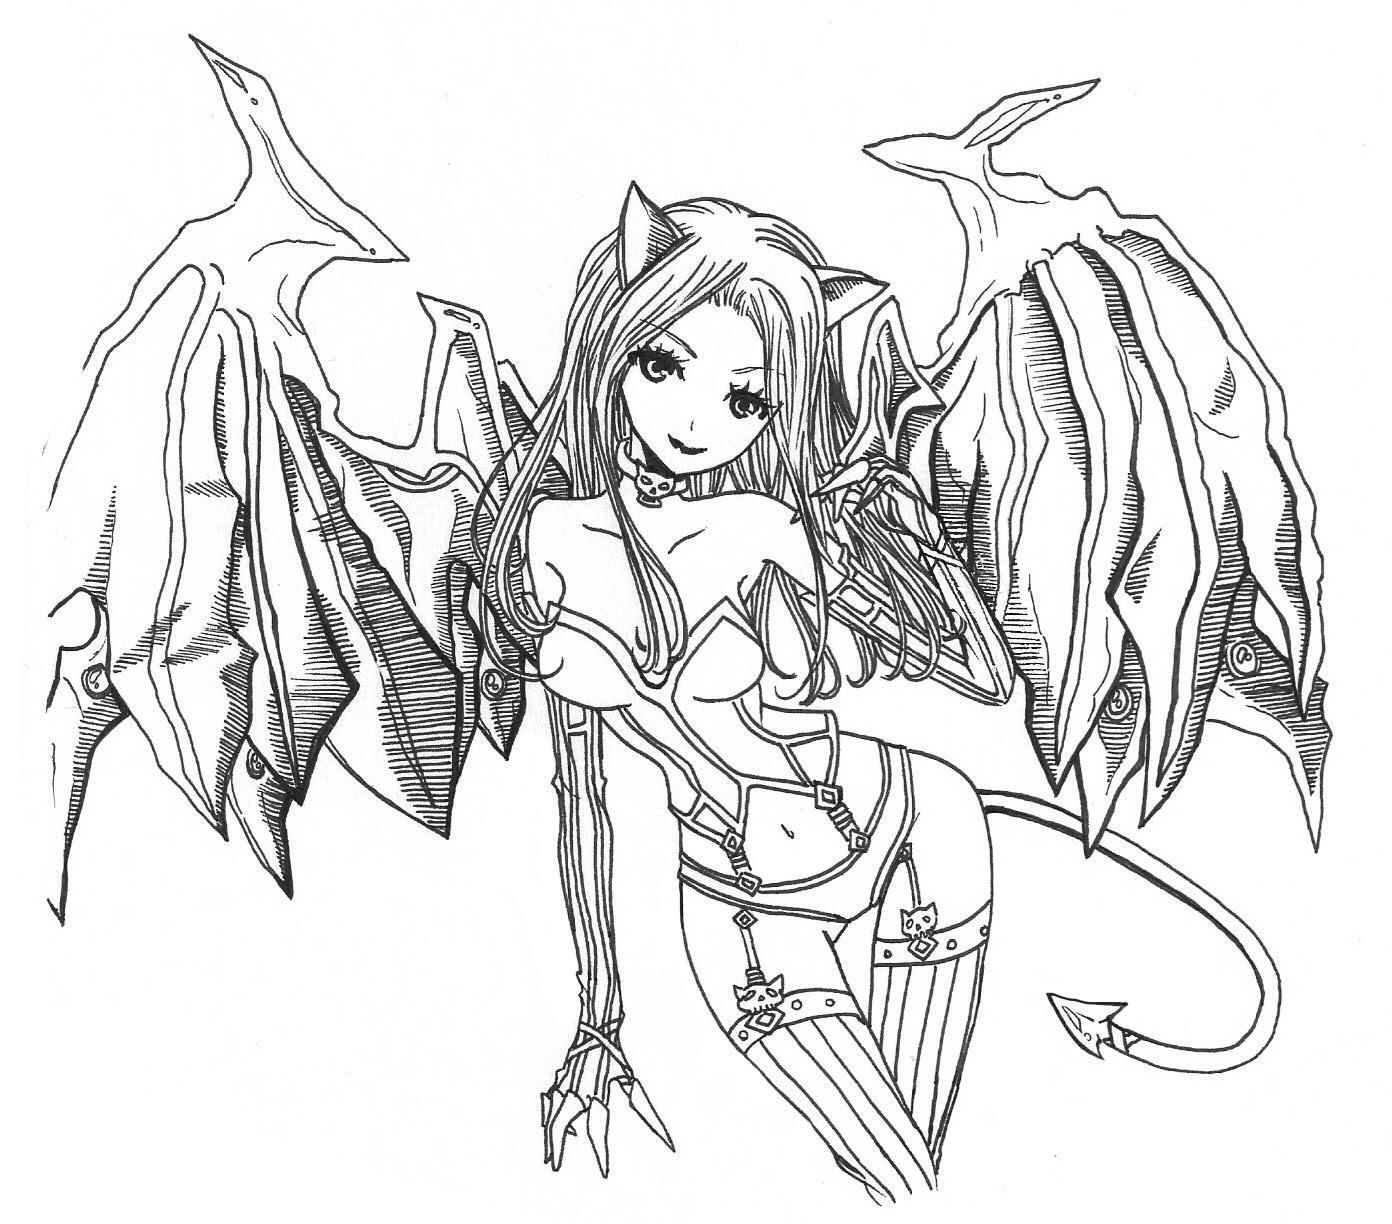 1392x1224 Anime Devil Coloring Pages Coloring Sheets